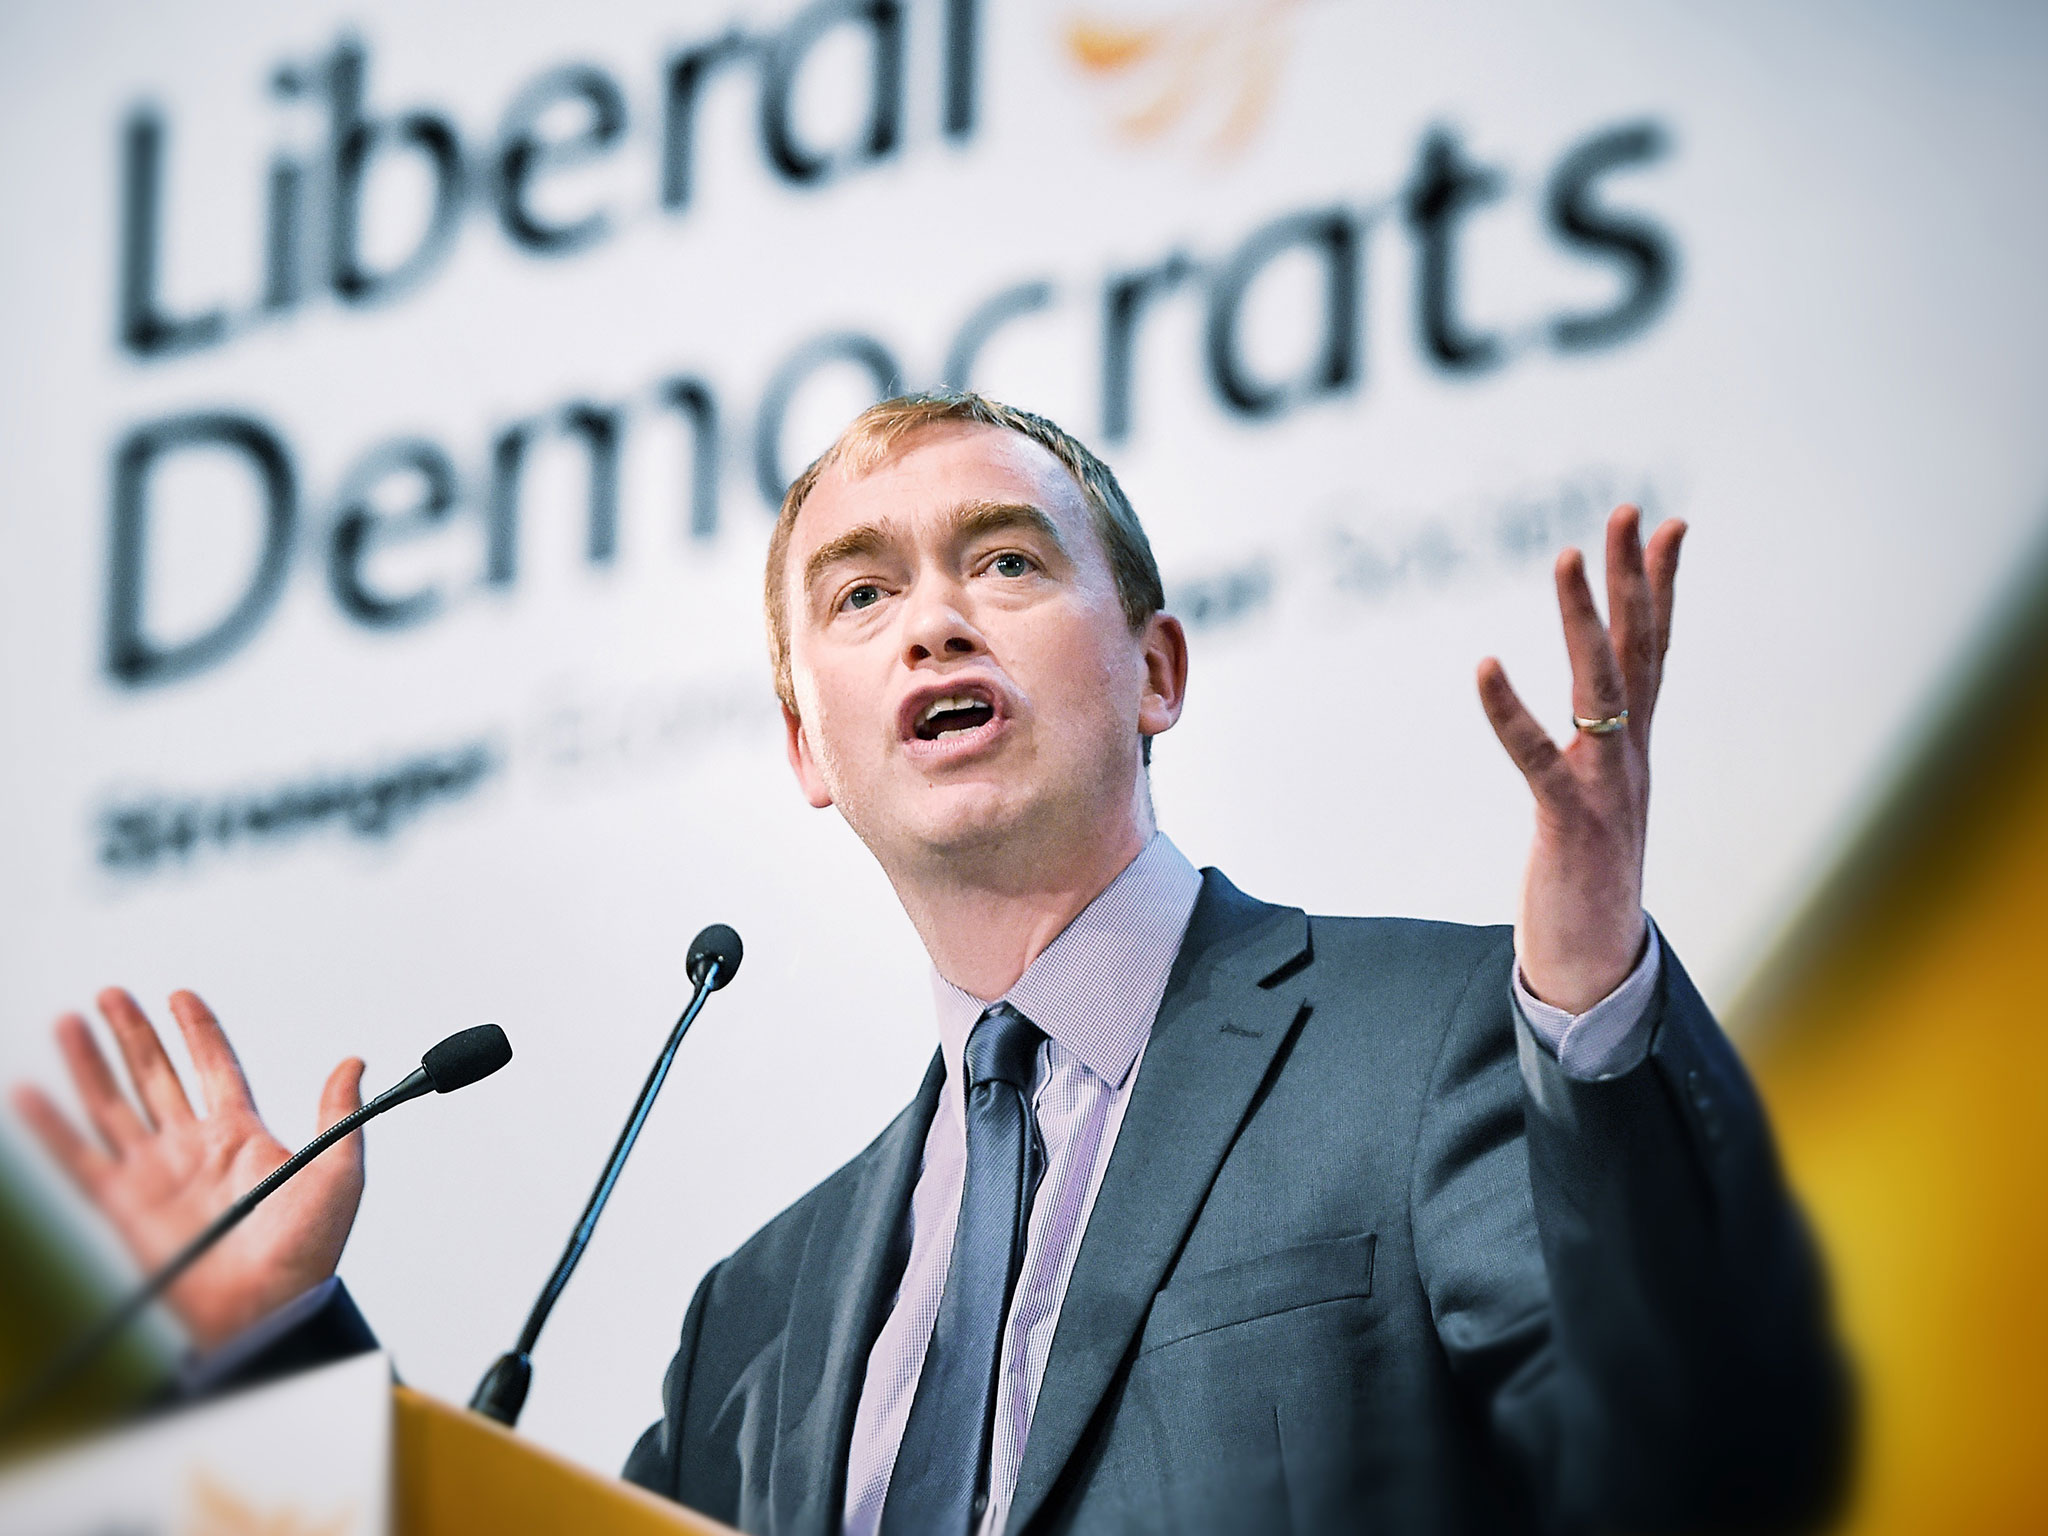 Tim-Farron-Getty.jpg